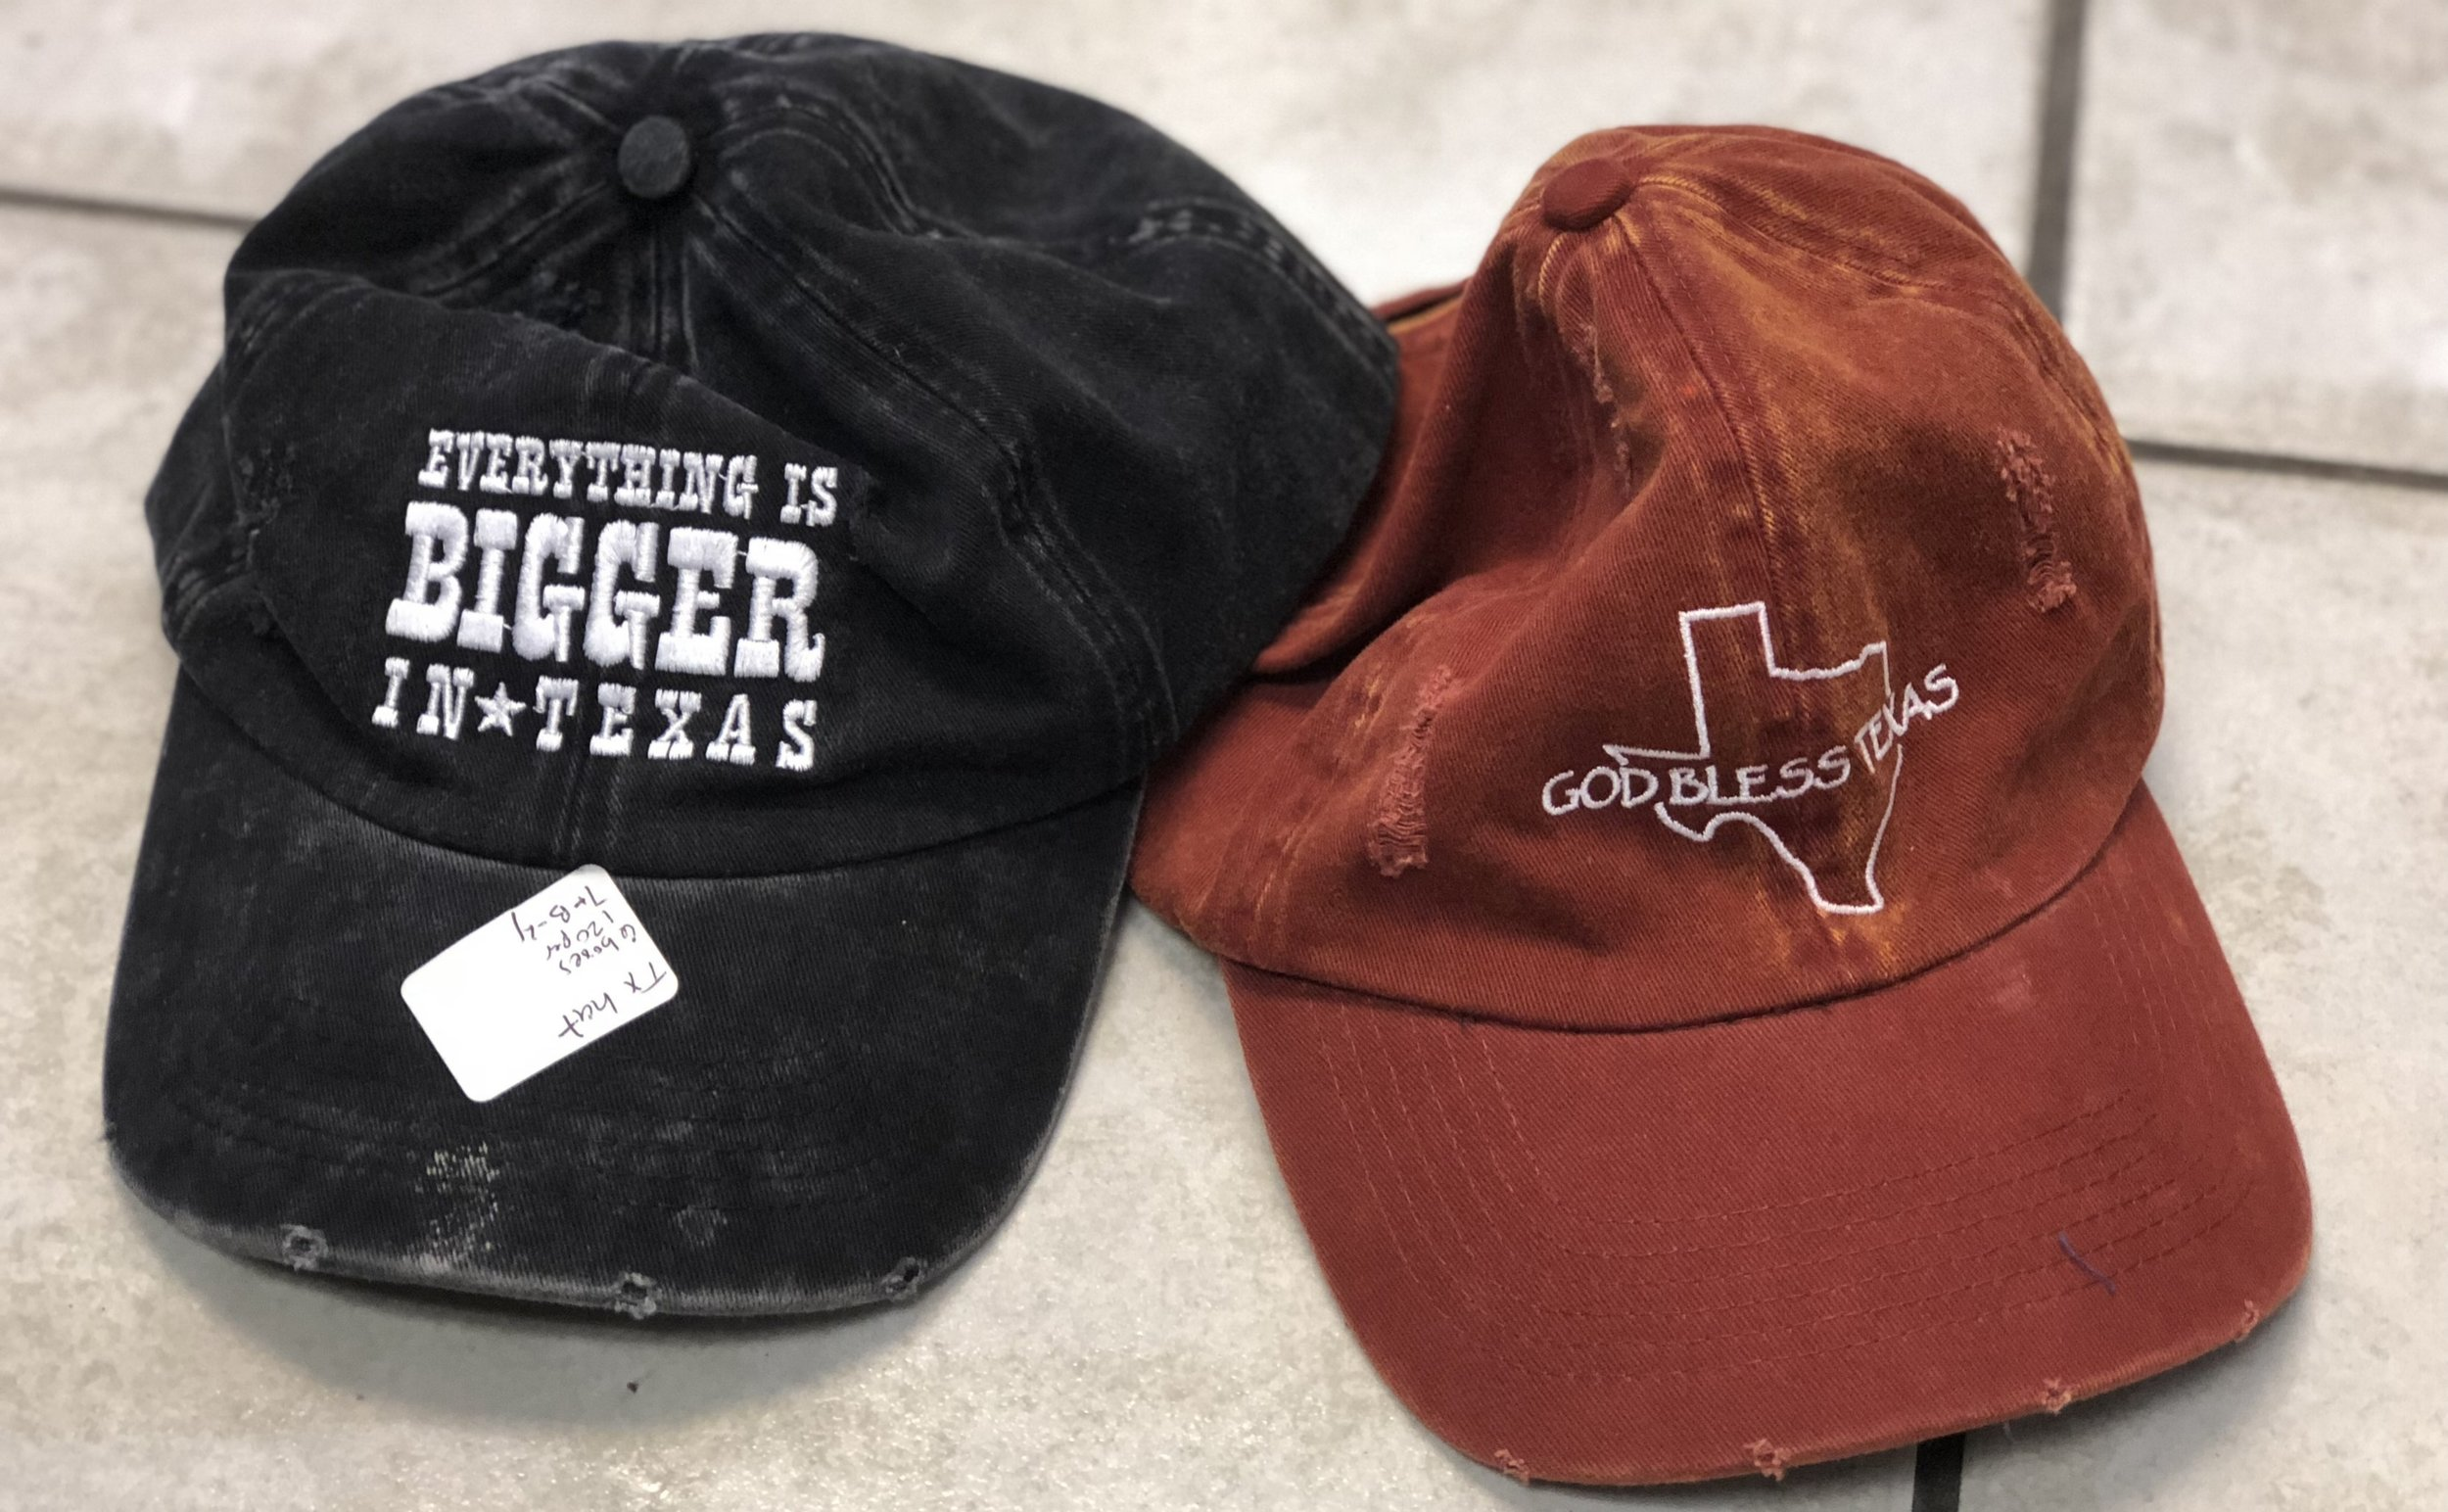 """EVERYTHING IS BIGGER IN TEXAS"" & ""GOD BLESS TEXAS"" BALL CAPS, 6 BOXES 120 PER"